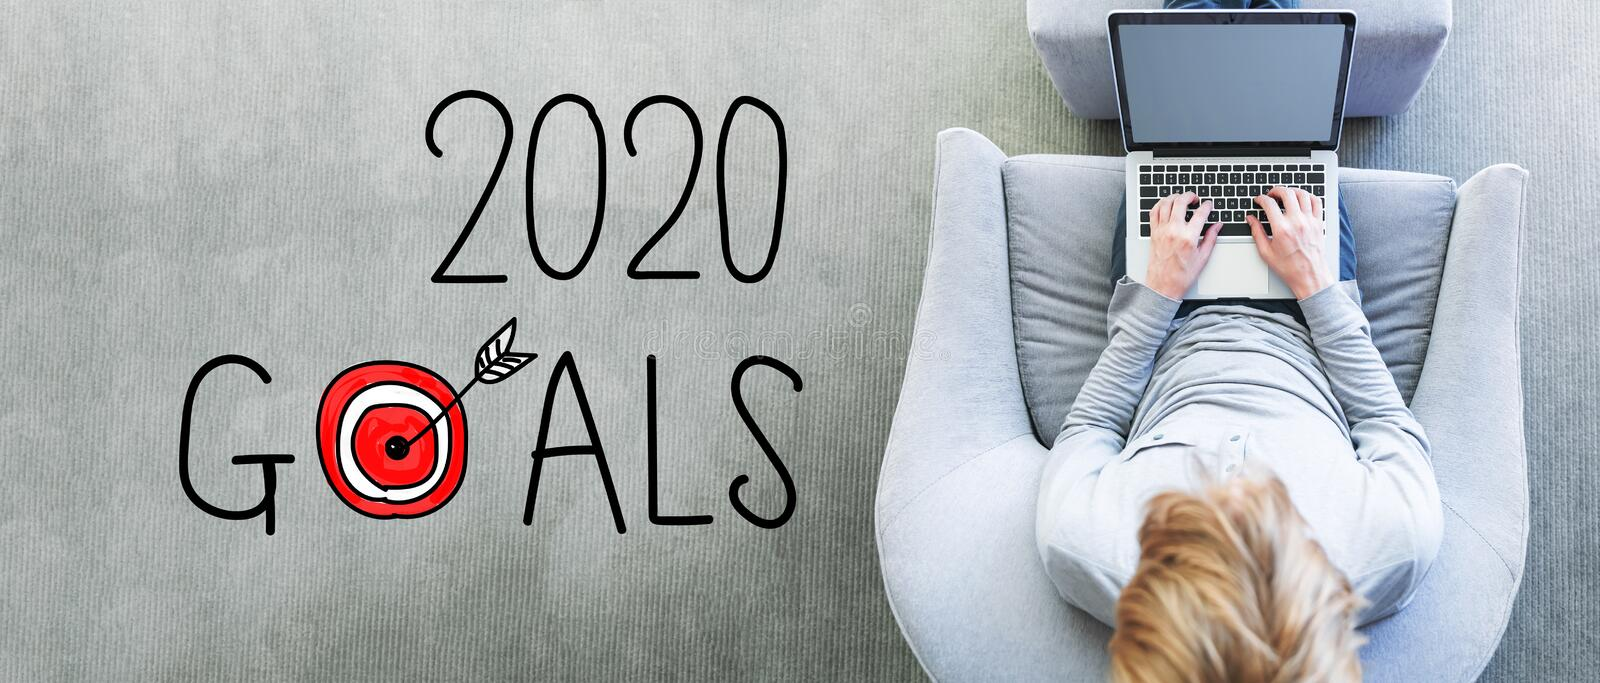 2020 Goals with man using a laptop. In a modern gray chair stock image